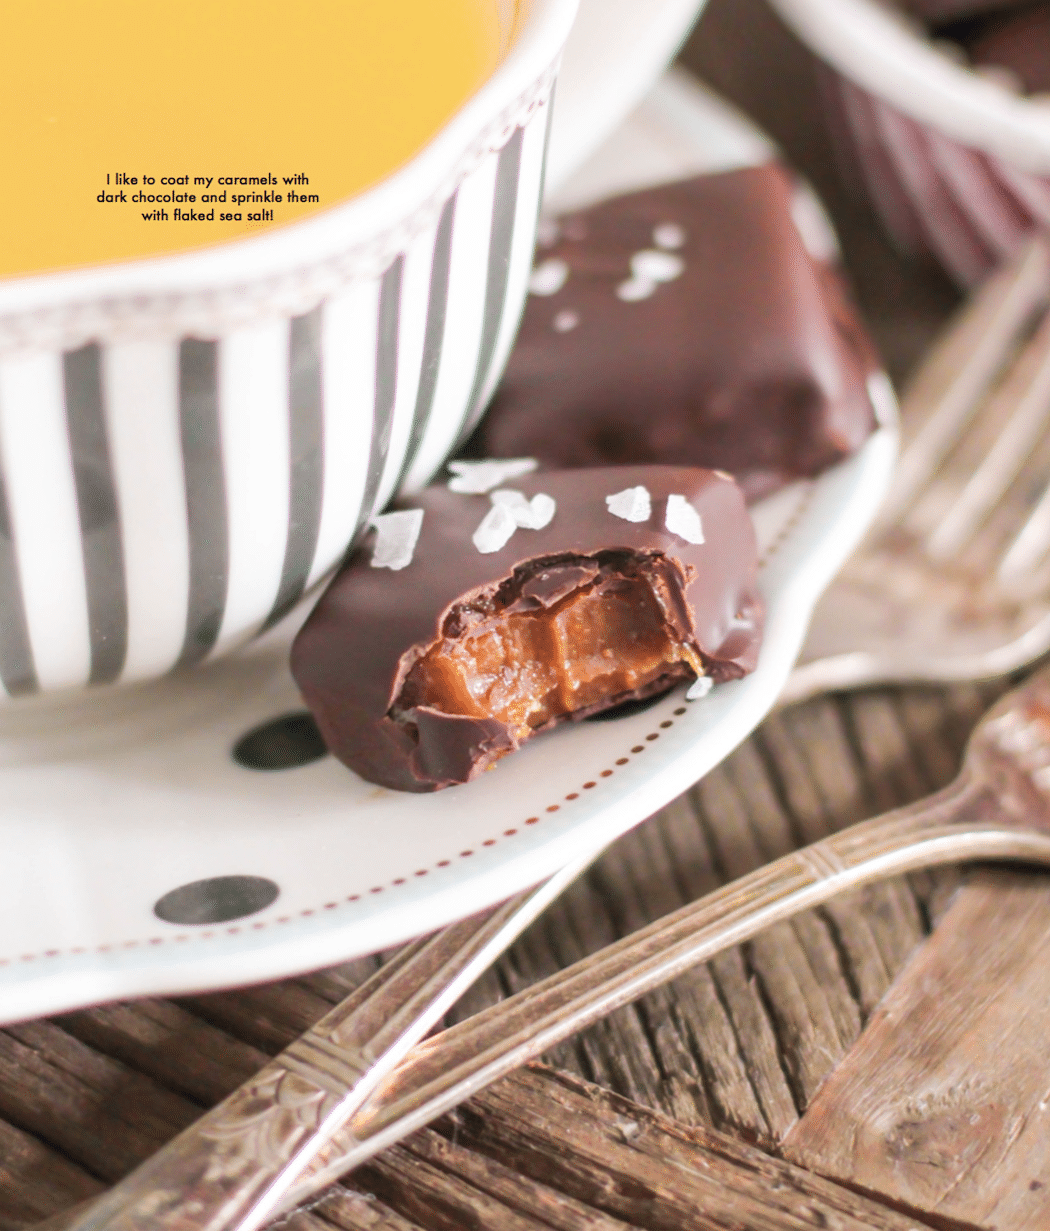 Chewy Caramels from the Naughty or Nice Cookbook: The ULTIMATE Healthy Dessert Cookbook!